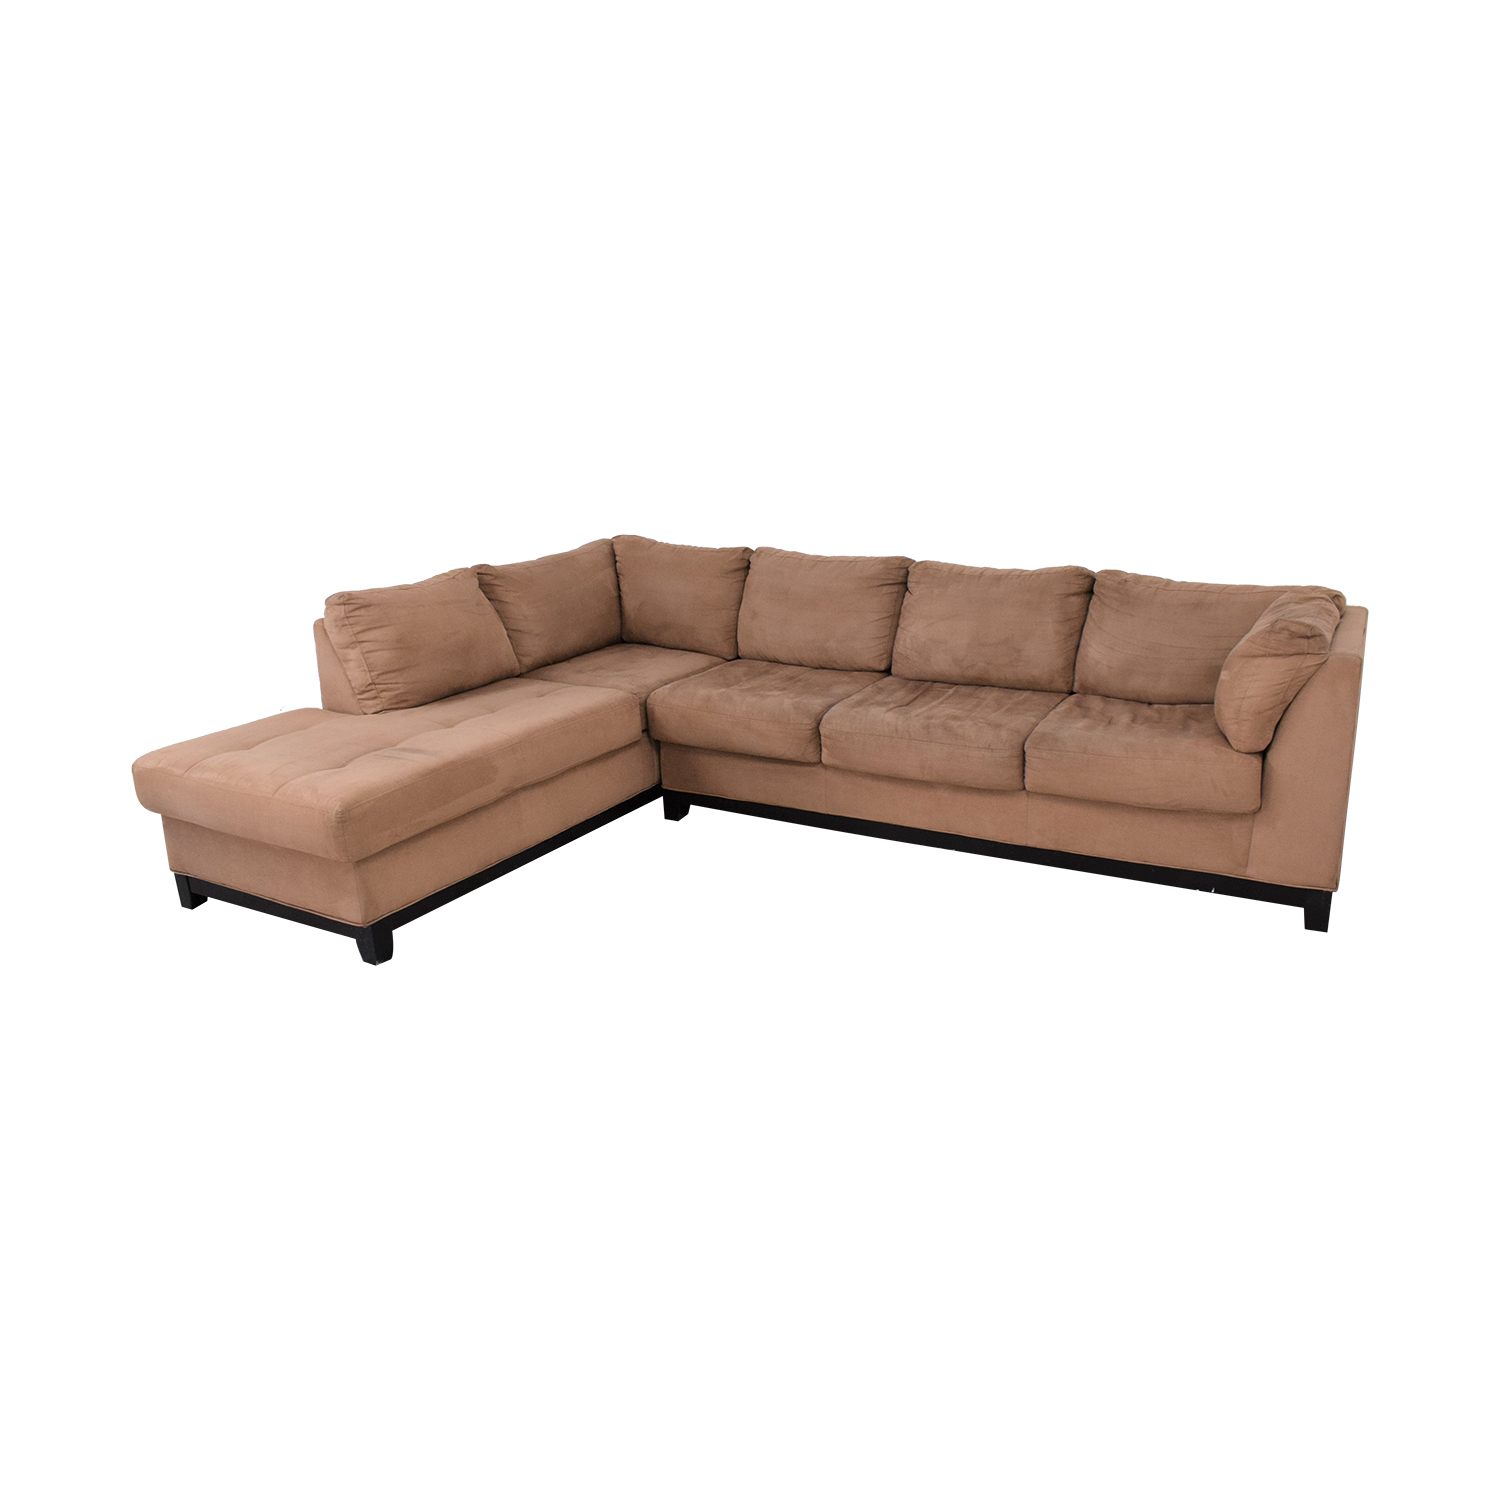 buy Raymour & Flanigan Two Piece Chaise Sectional Sofa Raymour & Flanigan Sectionals